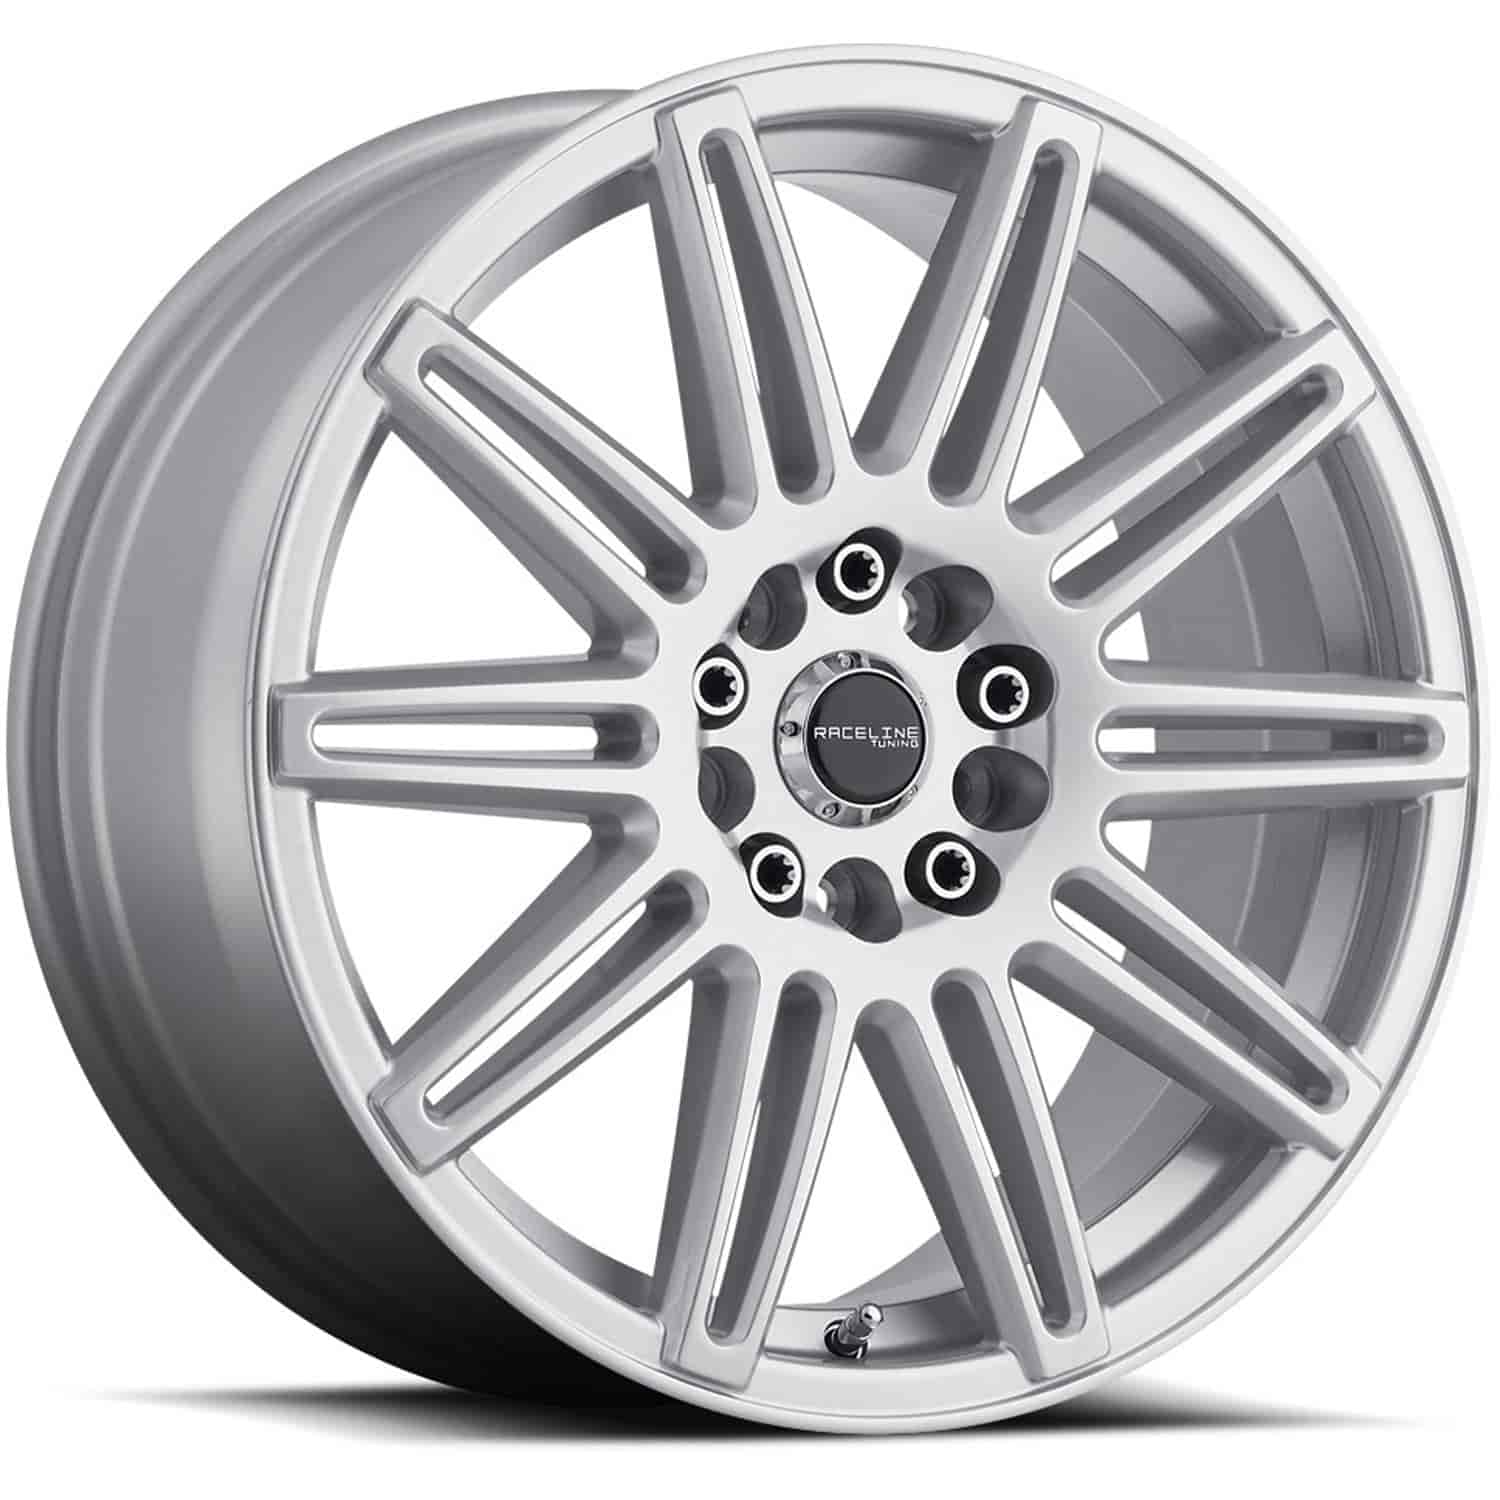 Raceline Wheels 143S7758640